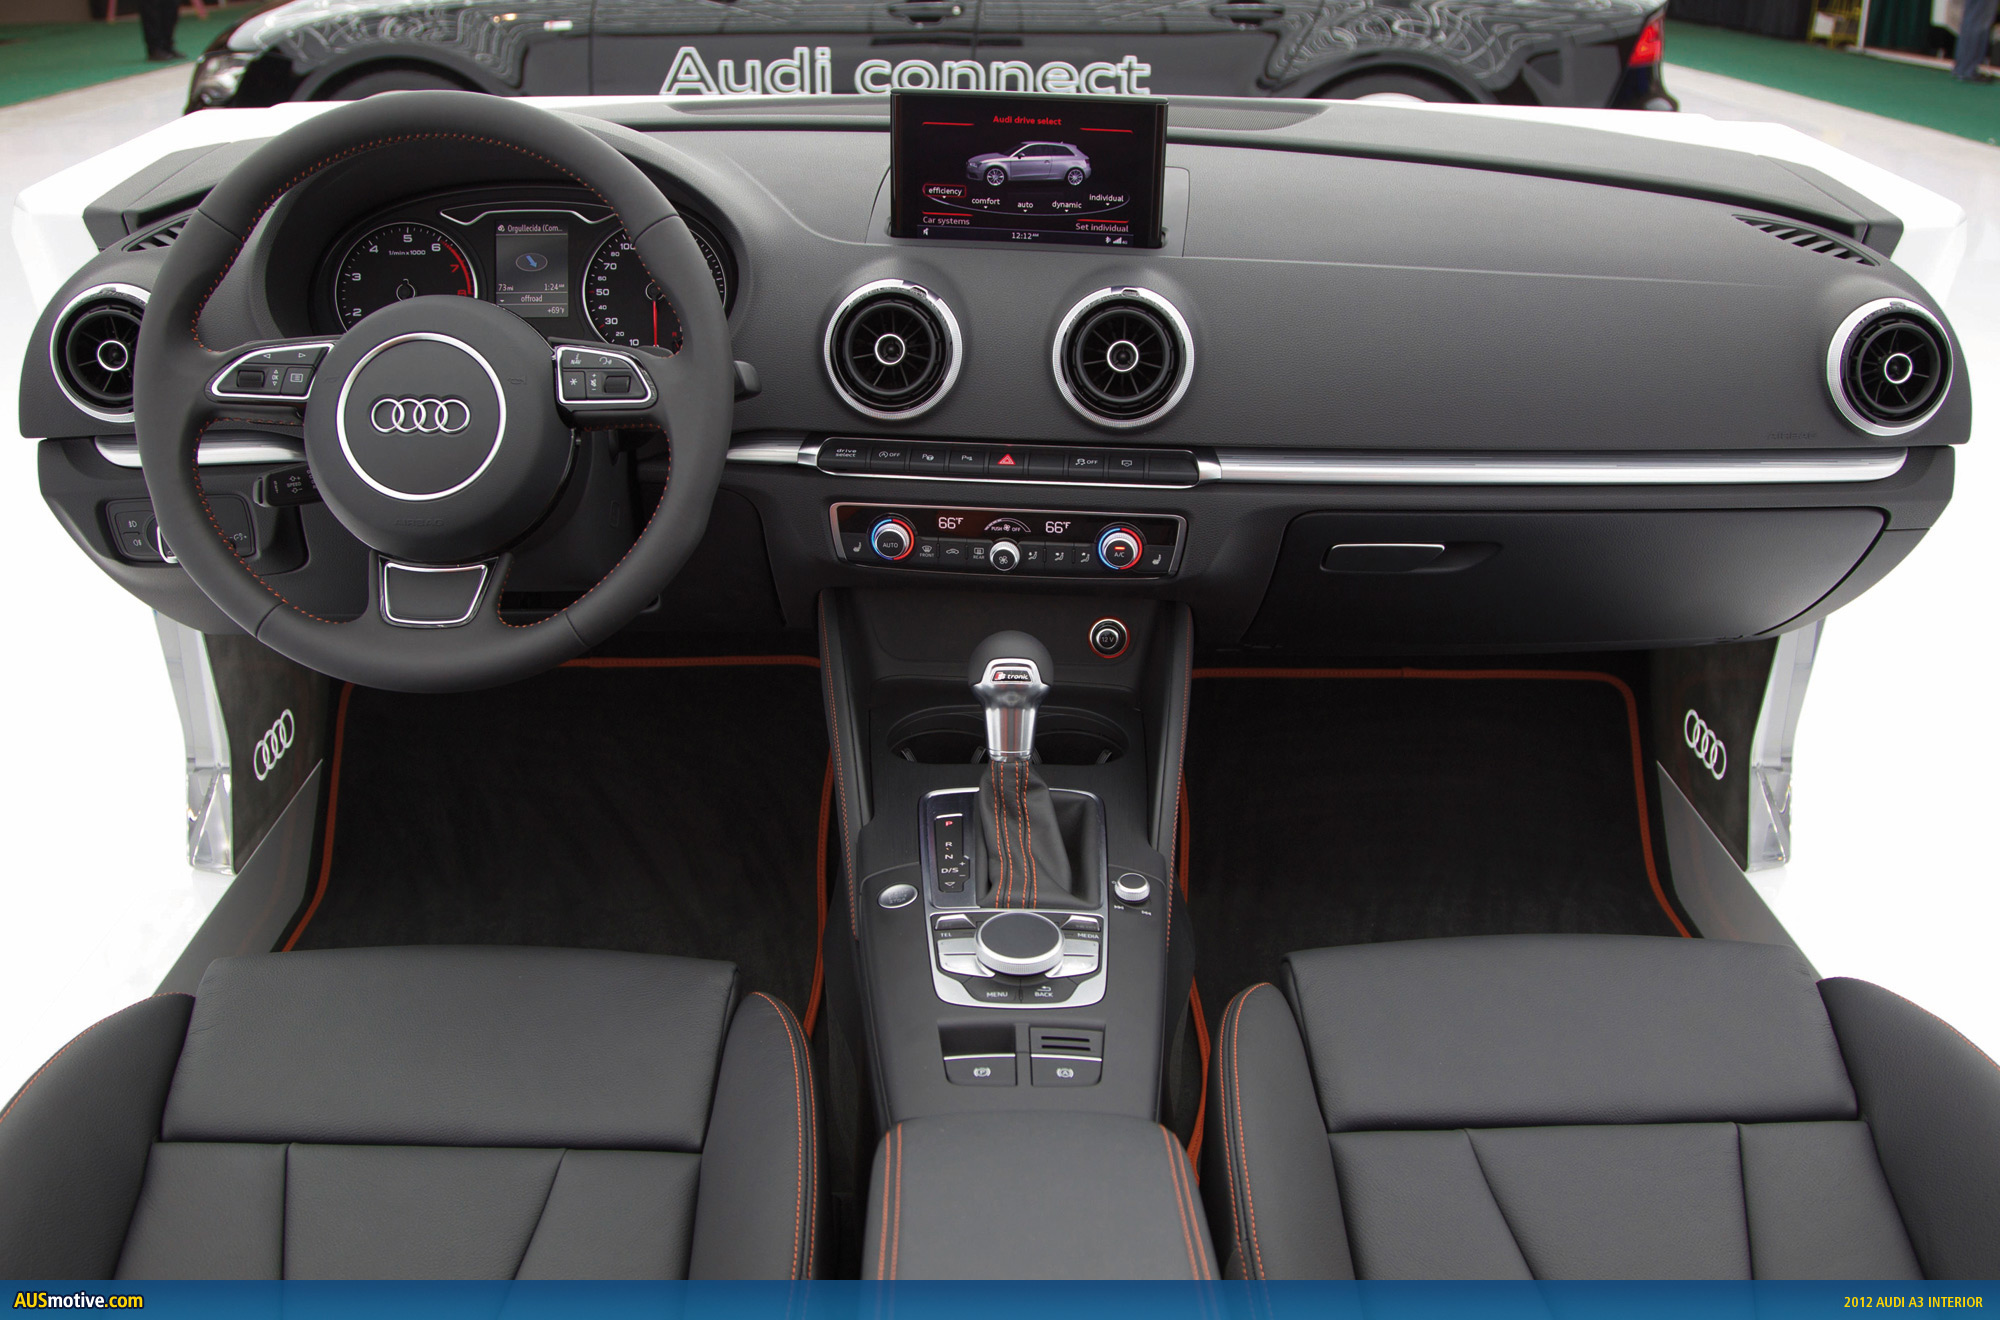 A3 Interieur Ausmotive 2012 Audi A3 Interior And More Revealed